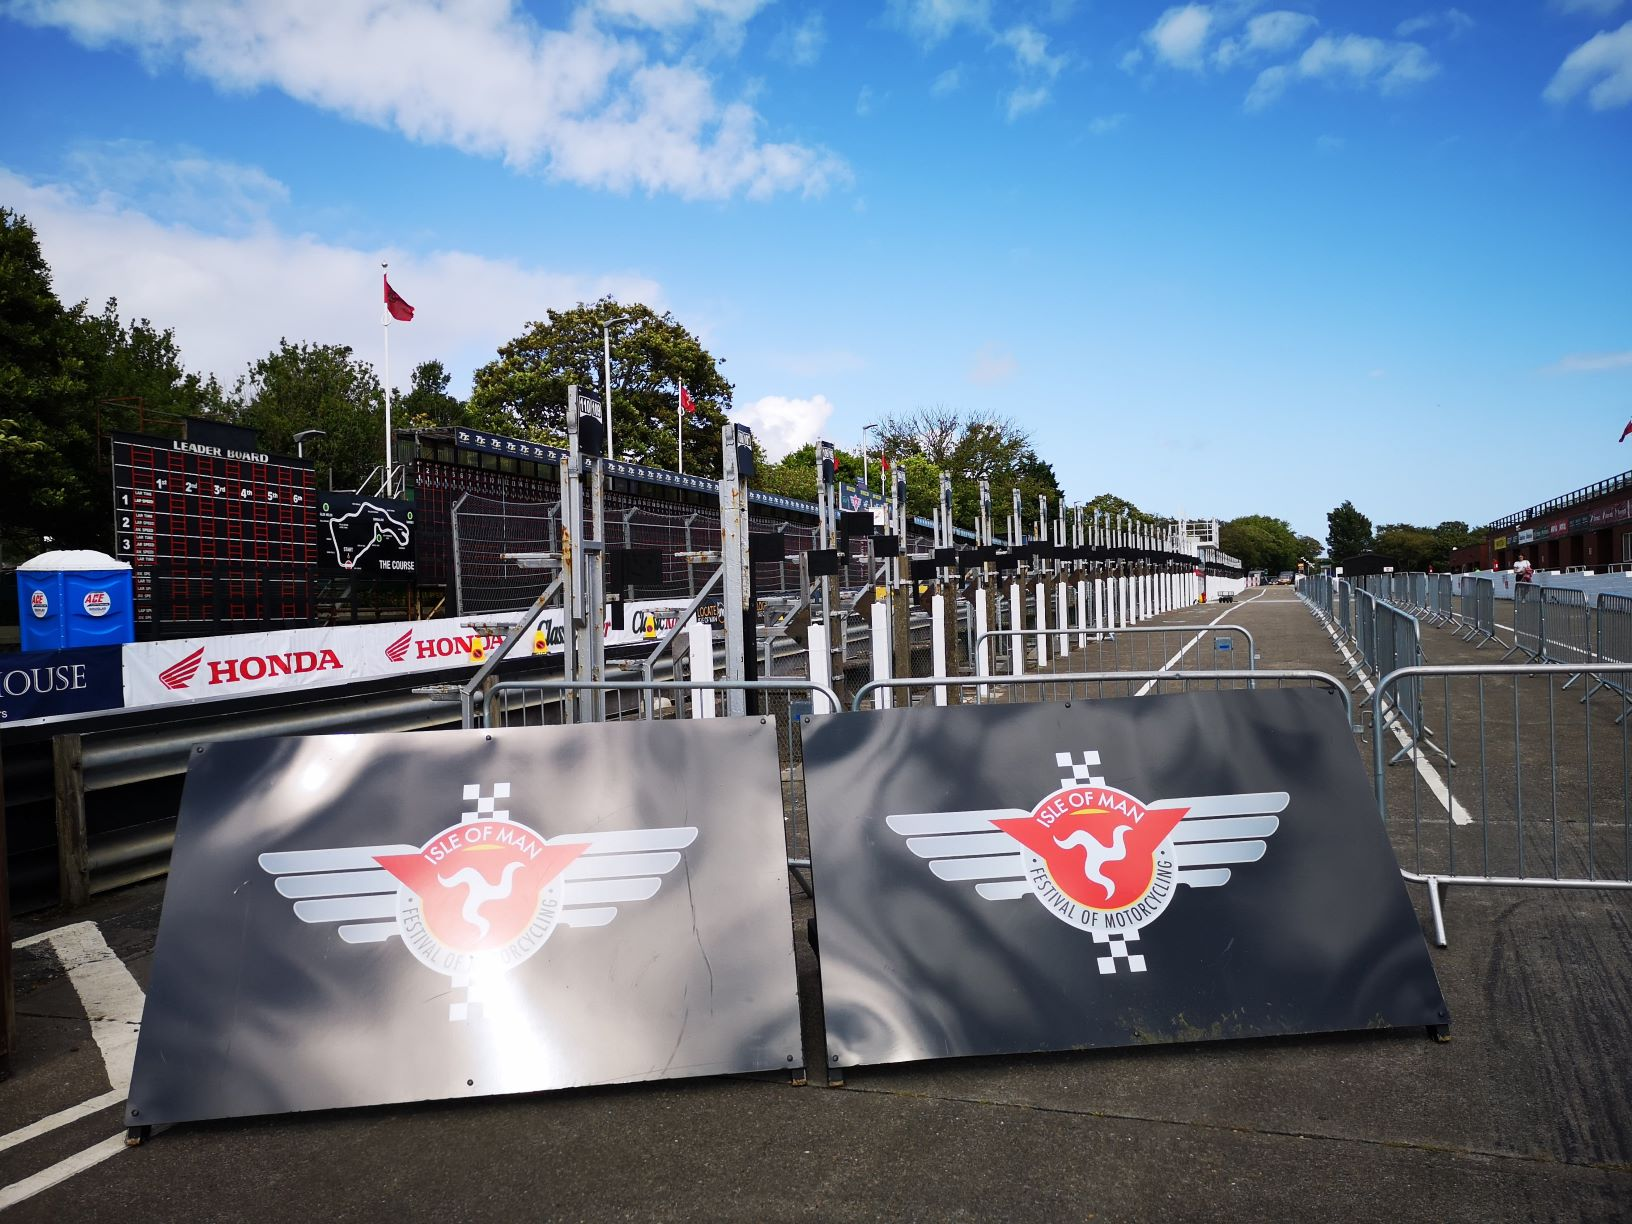 Saturday Evening's Timed Classic TT/Manx GP Practice Sessions Cancelled, Sunday Afternoon Practice Session Planned